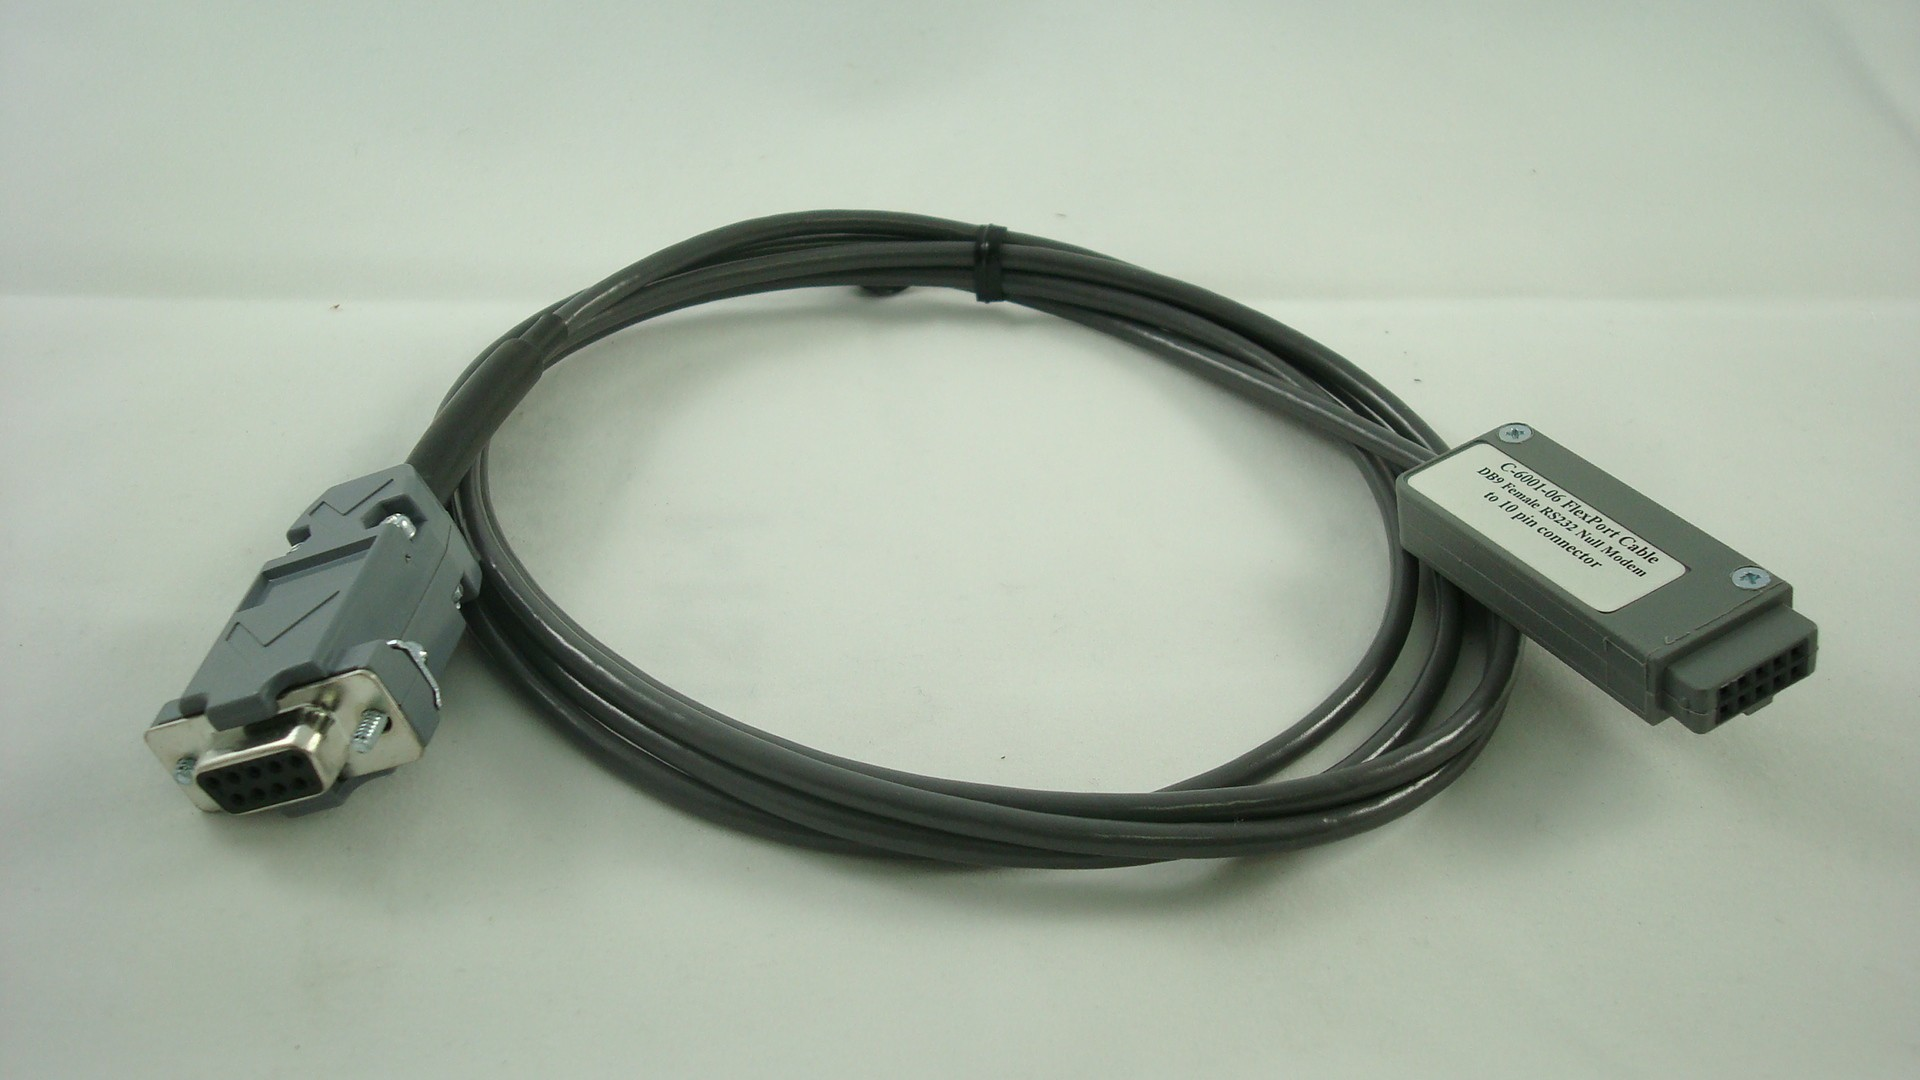 C-6009-06 MahrFederal Dimensionair 832 Cable to 10 pin connector (6 ft)